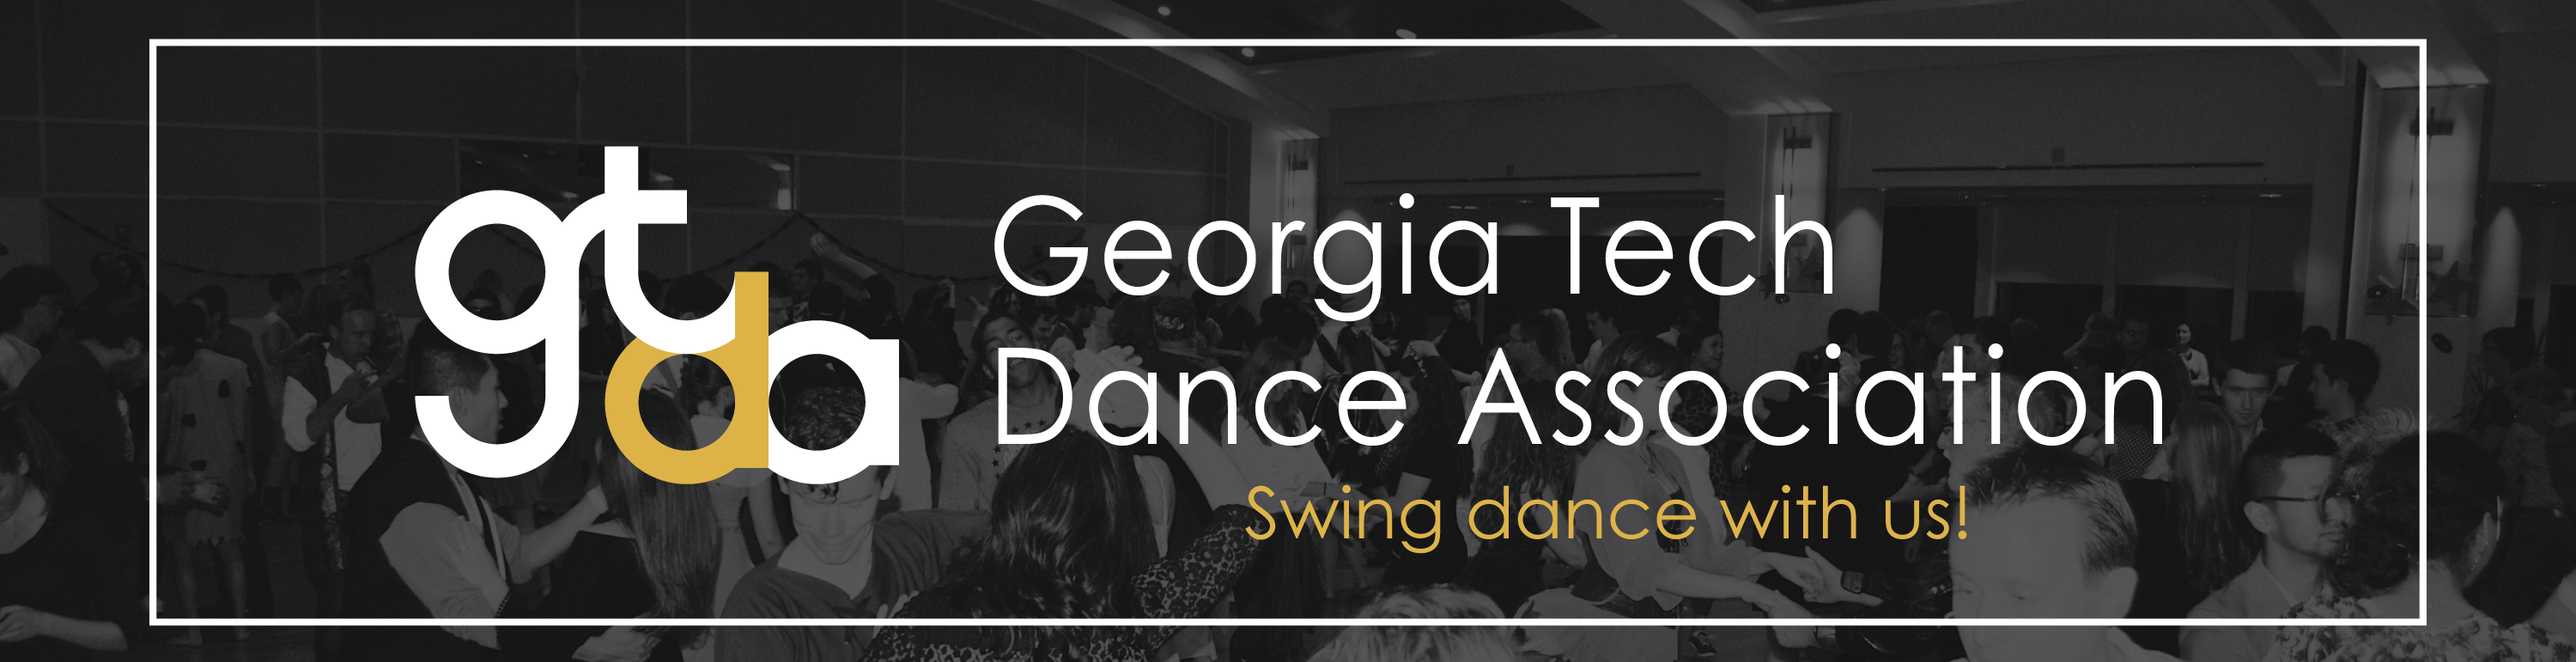 Georgia Tech Dance Association